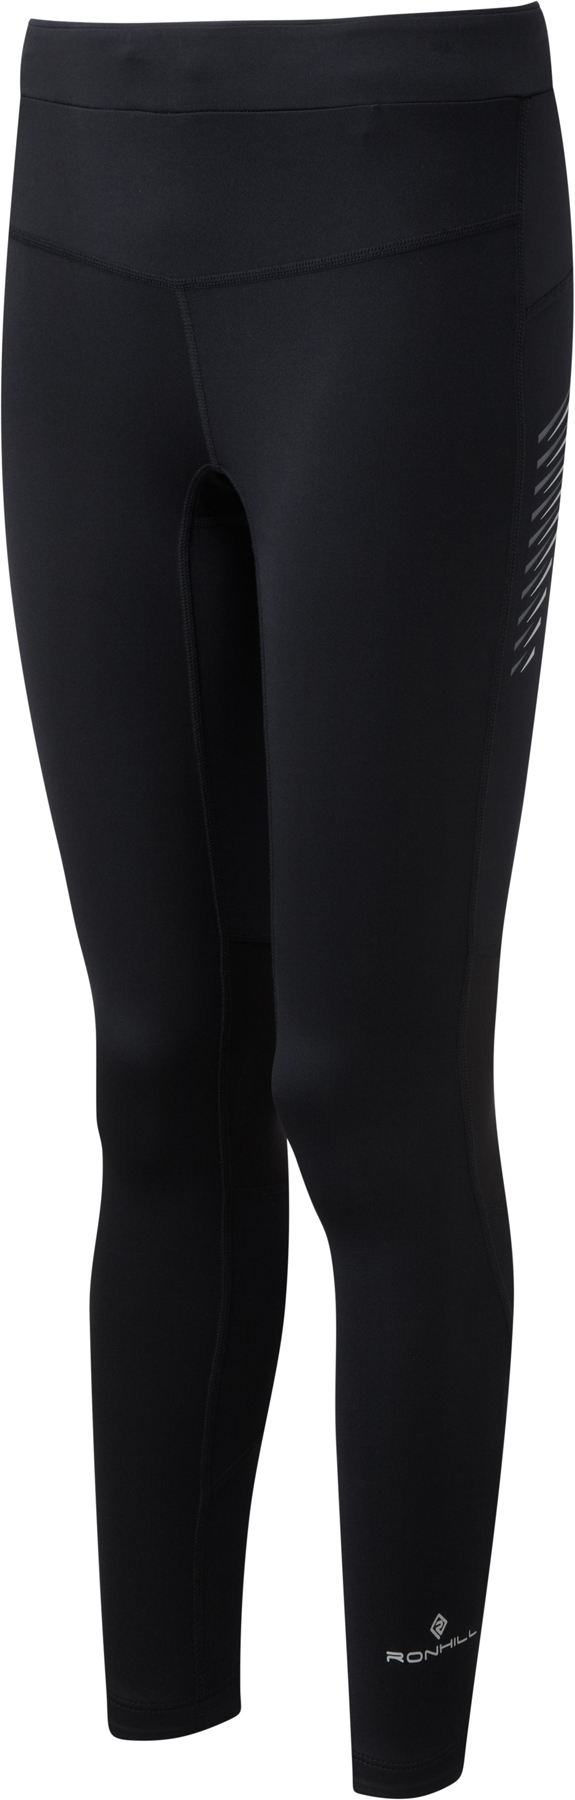 Ronhill Stride Strækbare tights - Dame | Trousers